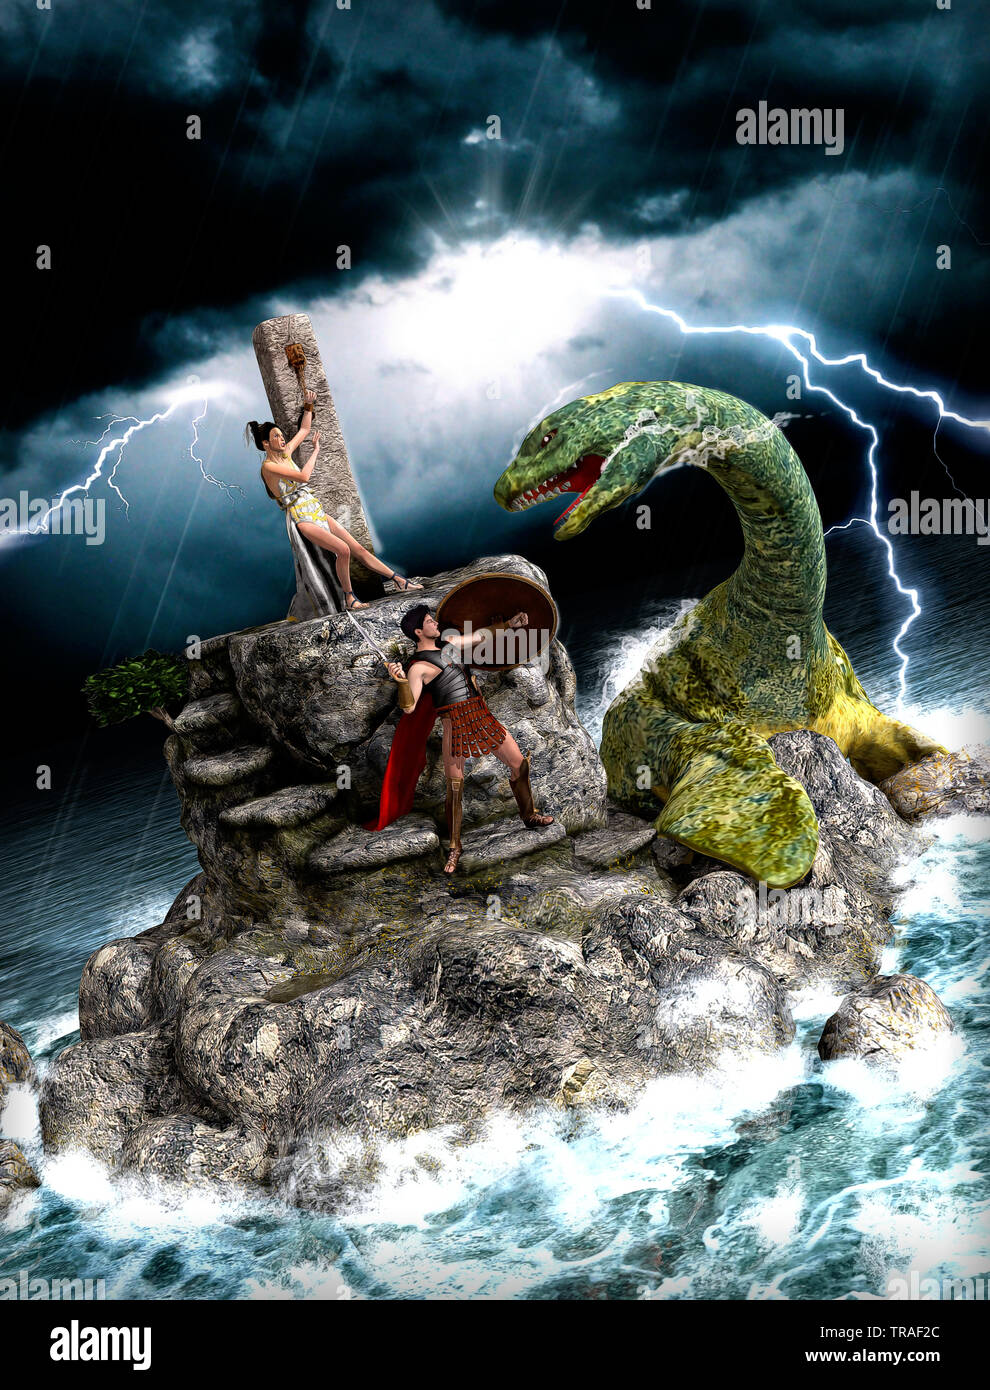 Perseus saving Andromeda, who was offered as a sacrifice to appease the gods, from a sea monster, Greek mythology tale, 3d render illustration - Stock Image